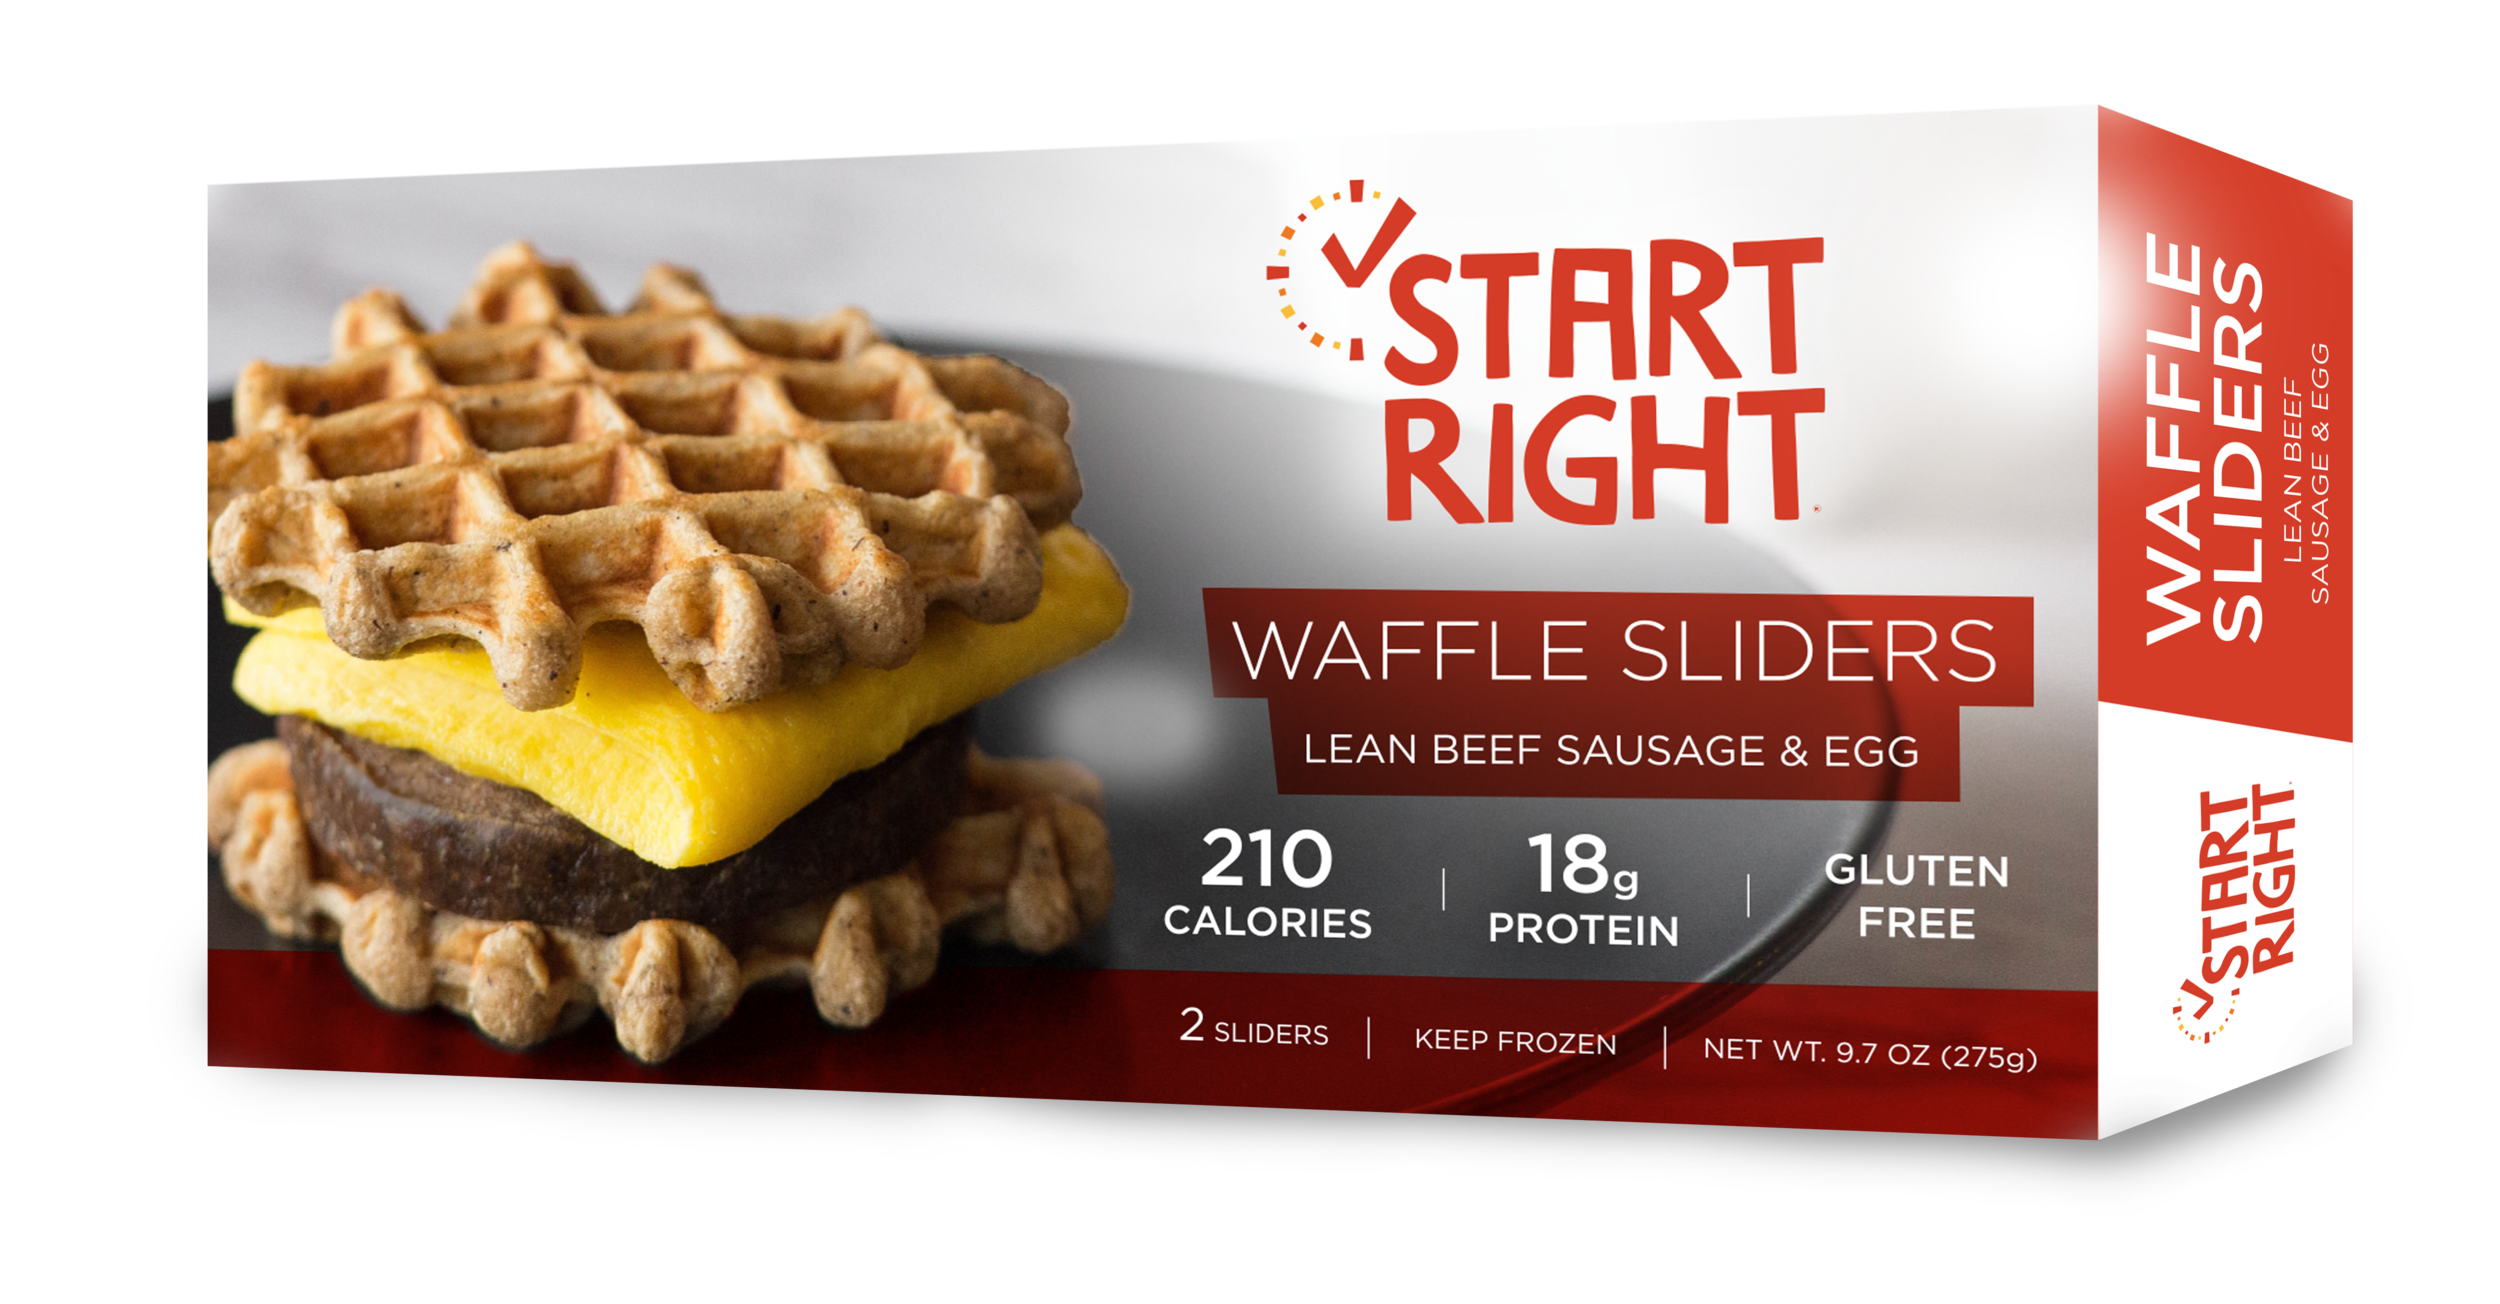 waffle slider, breakfast sandwich, sausage and egg sandwich, high protein breakfast sandwich, breakfast sammie,